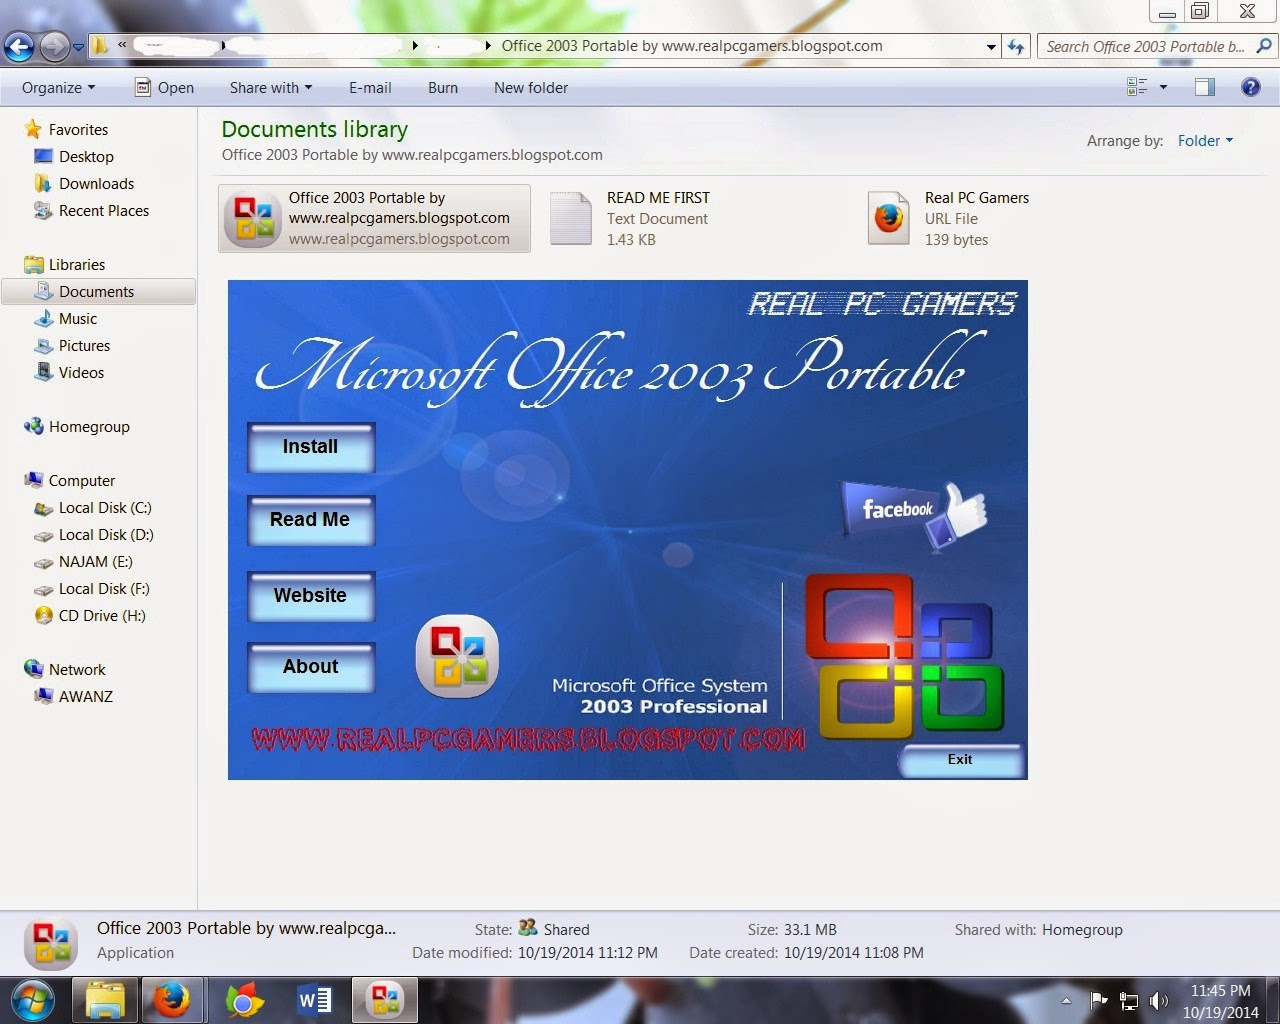 download Software Requirement